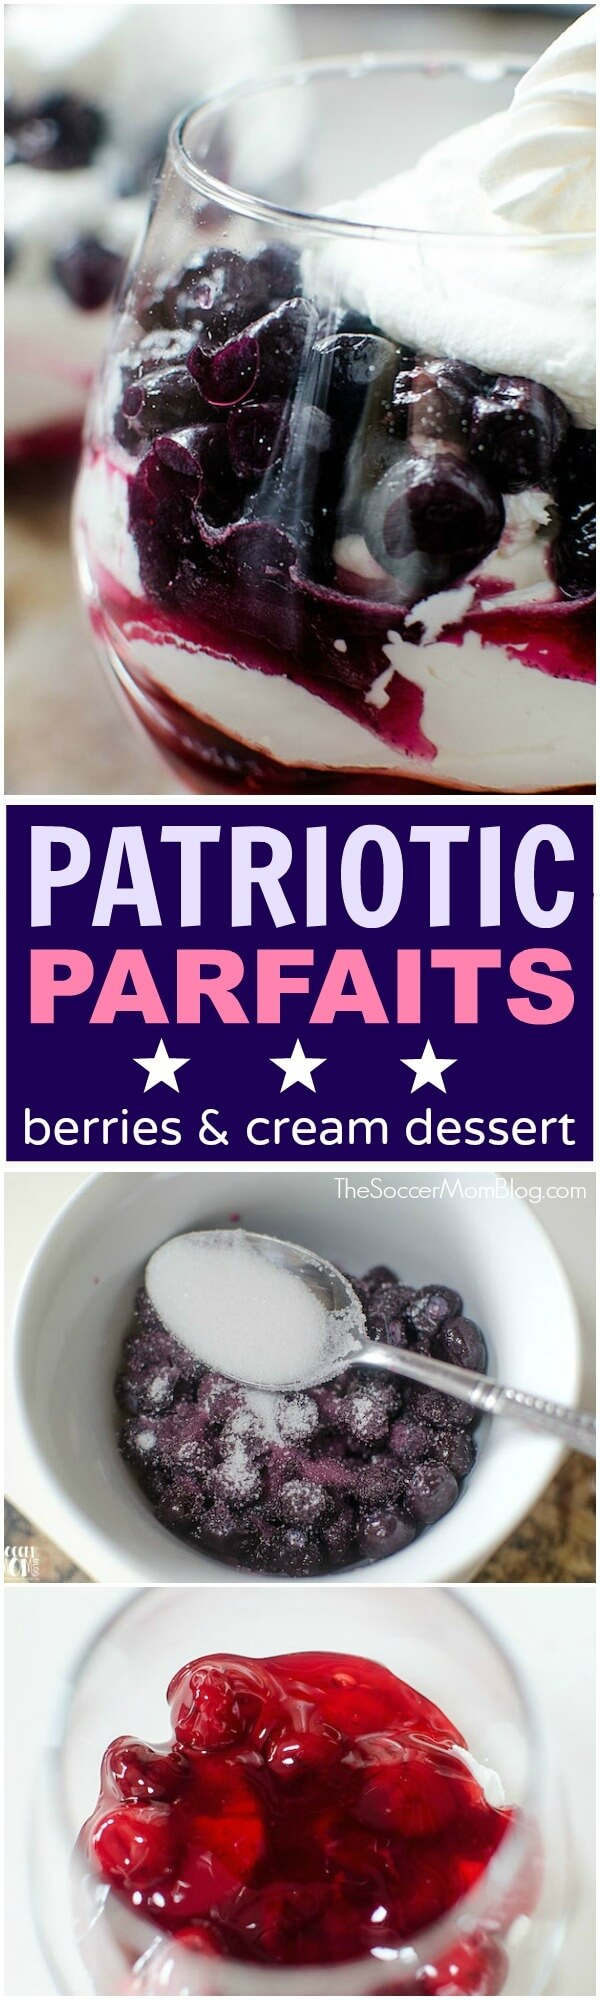 This light, yet luscious Cherry Berry Parfait is a fun & easy summer dessert. A gorgeous red, white, & blue layered treat perfect for a 4th of July party.